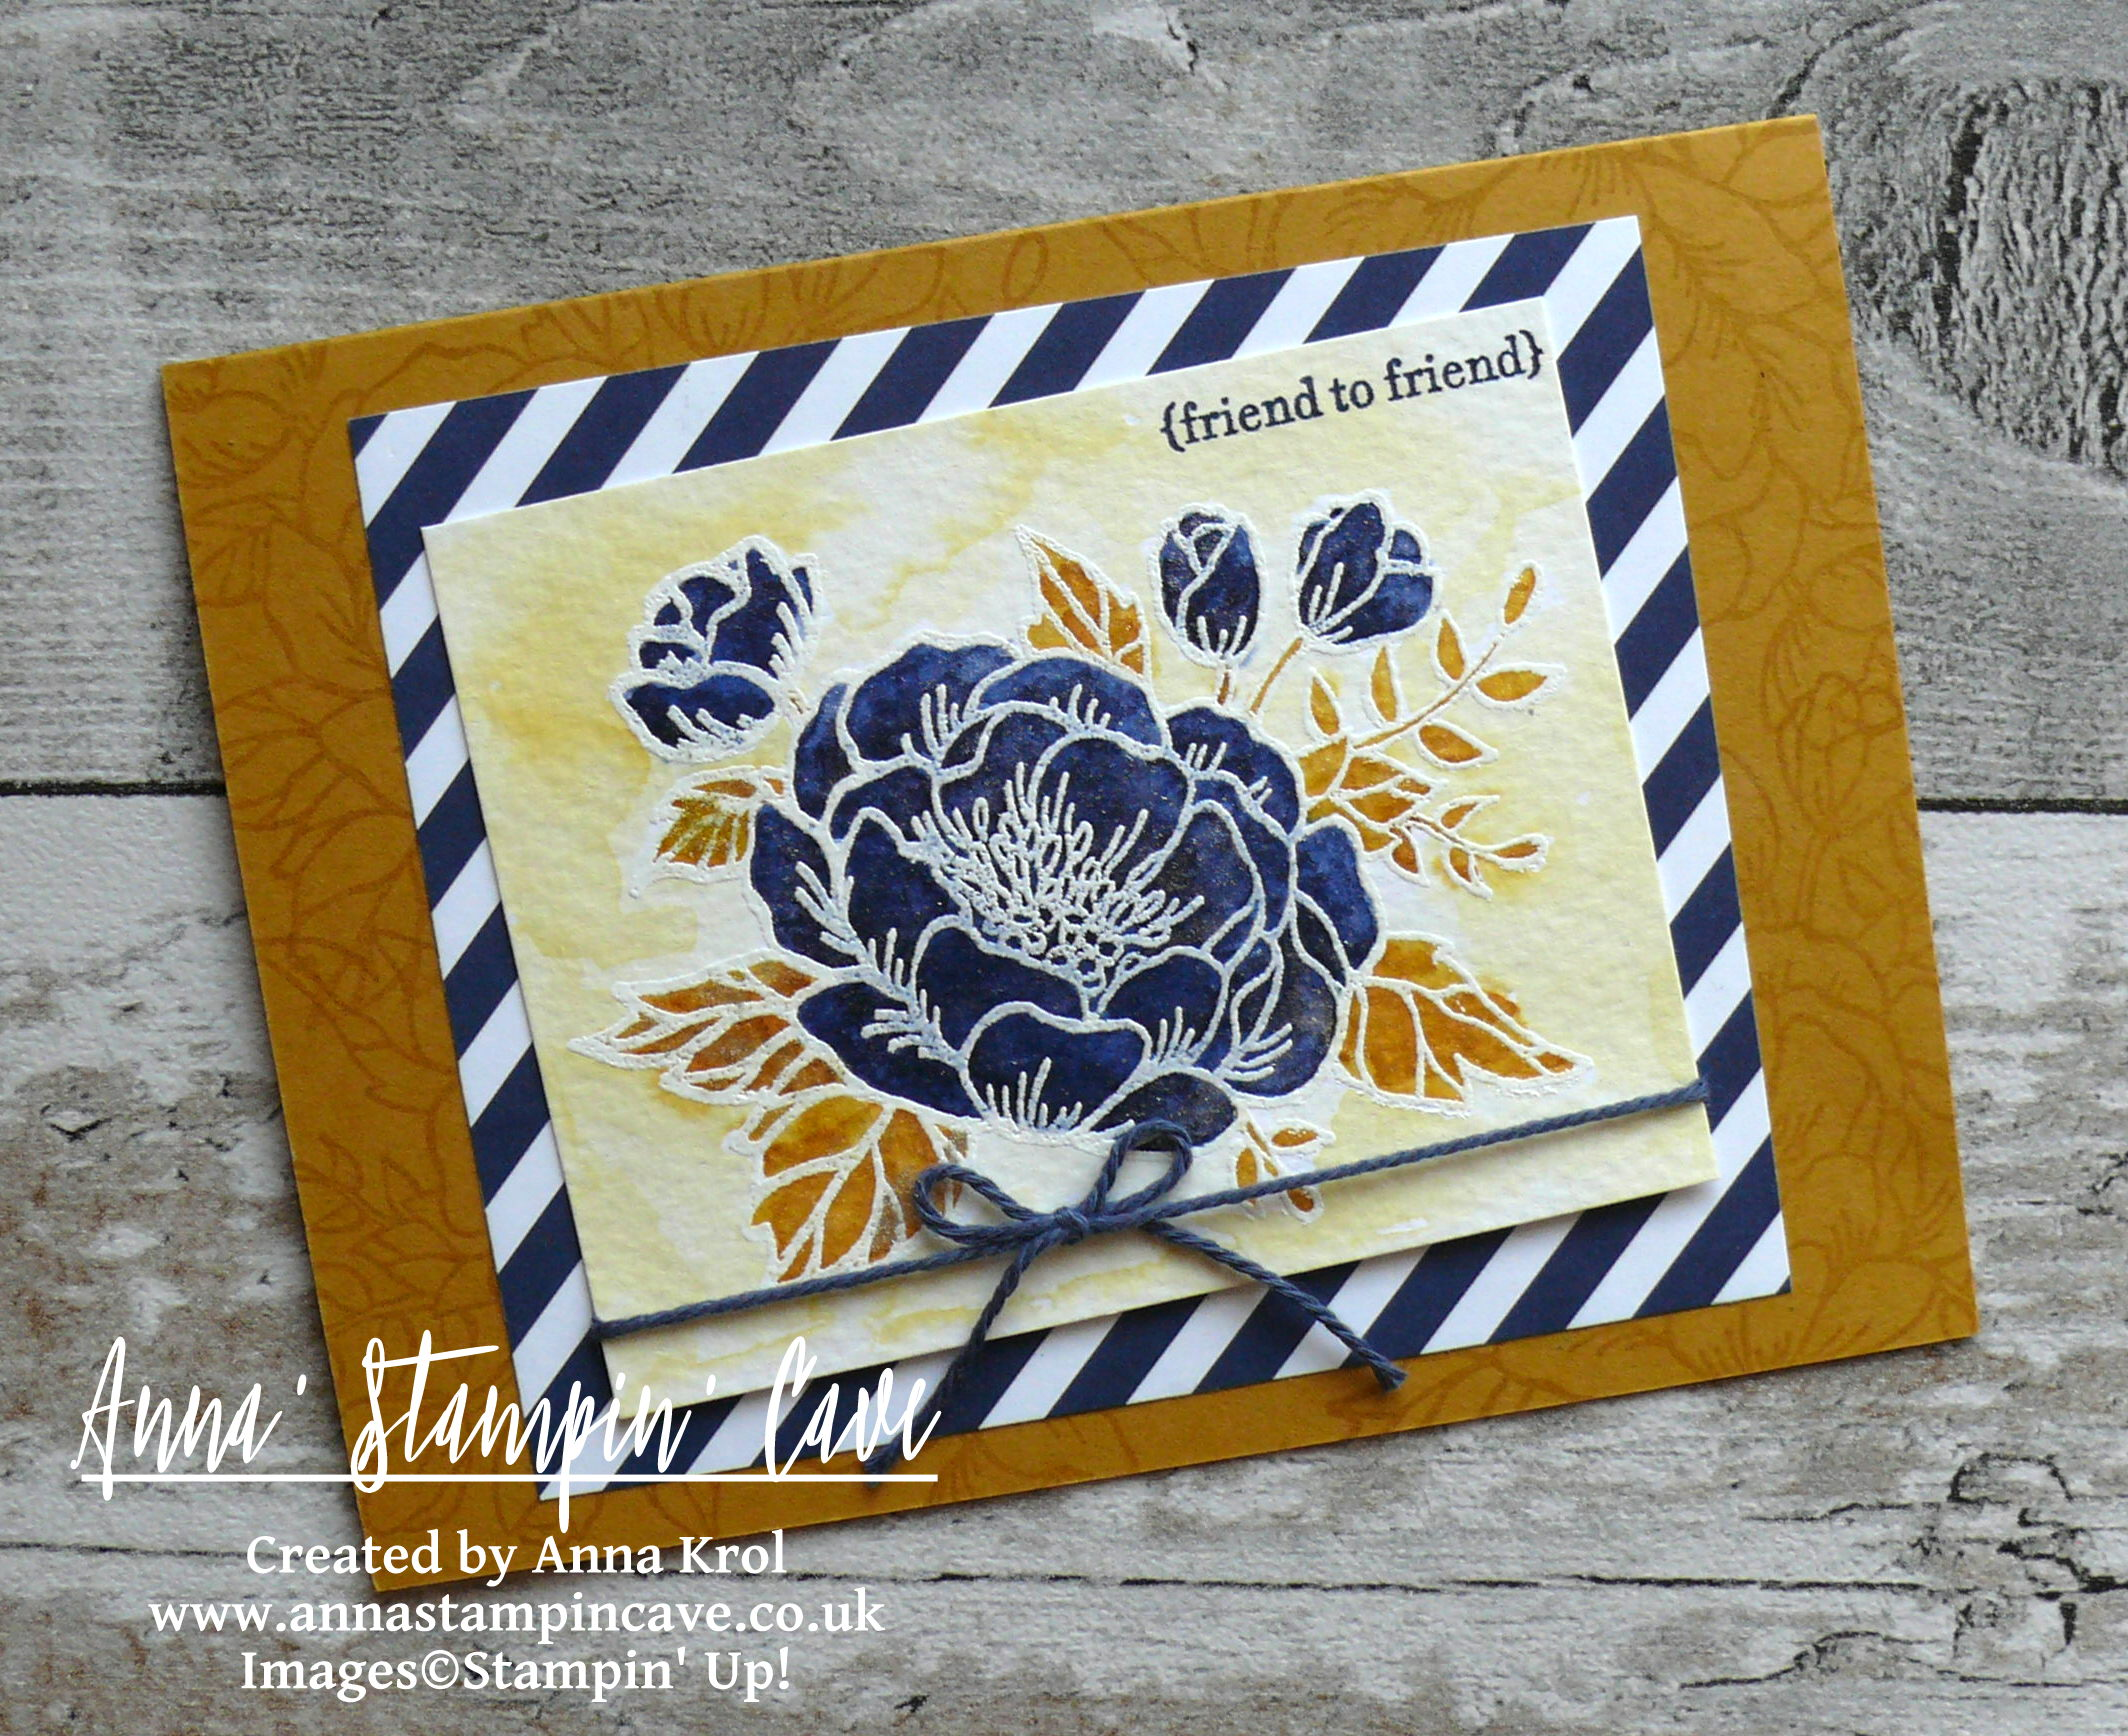 Anna' Stampin' Cave_Stampin' Up! Birthday Blooms Stamp Set_Watercolour Card_Delightful Dijon Night Of Navy 2